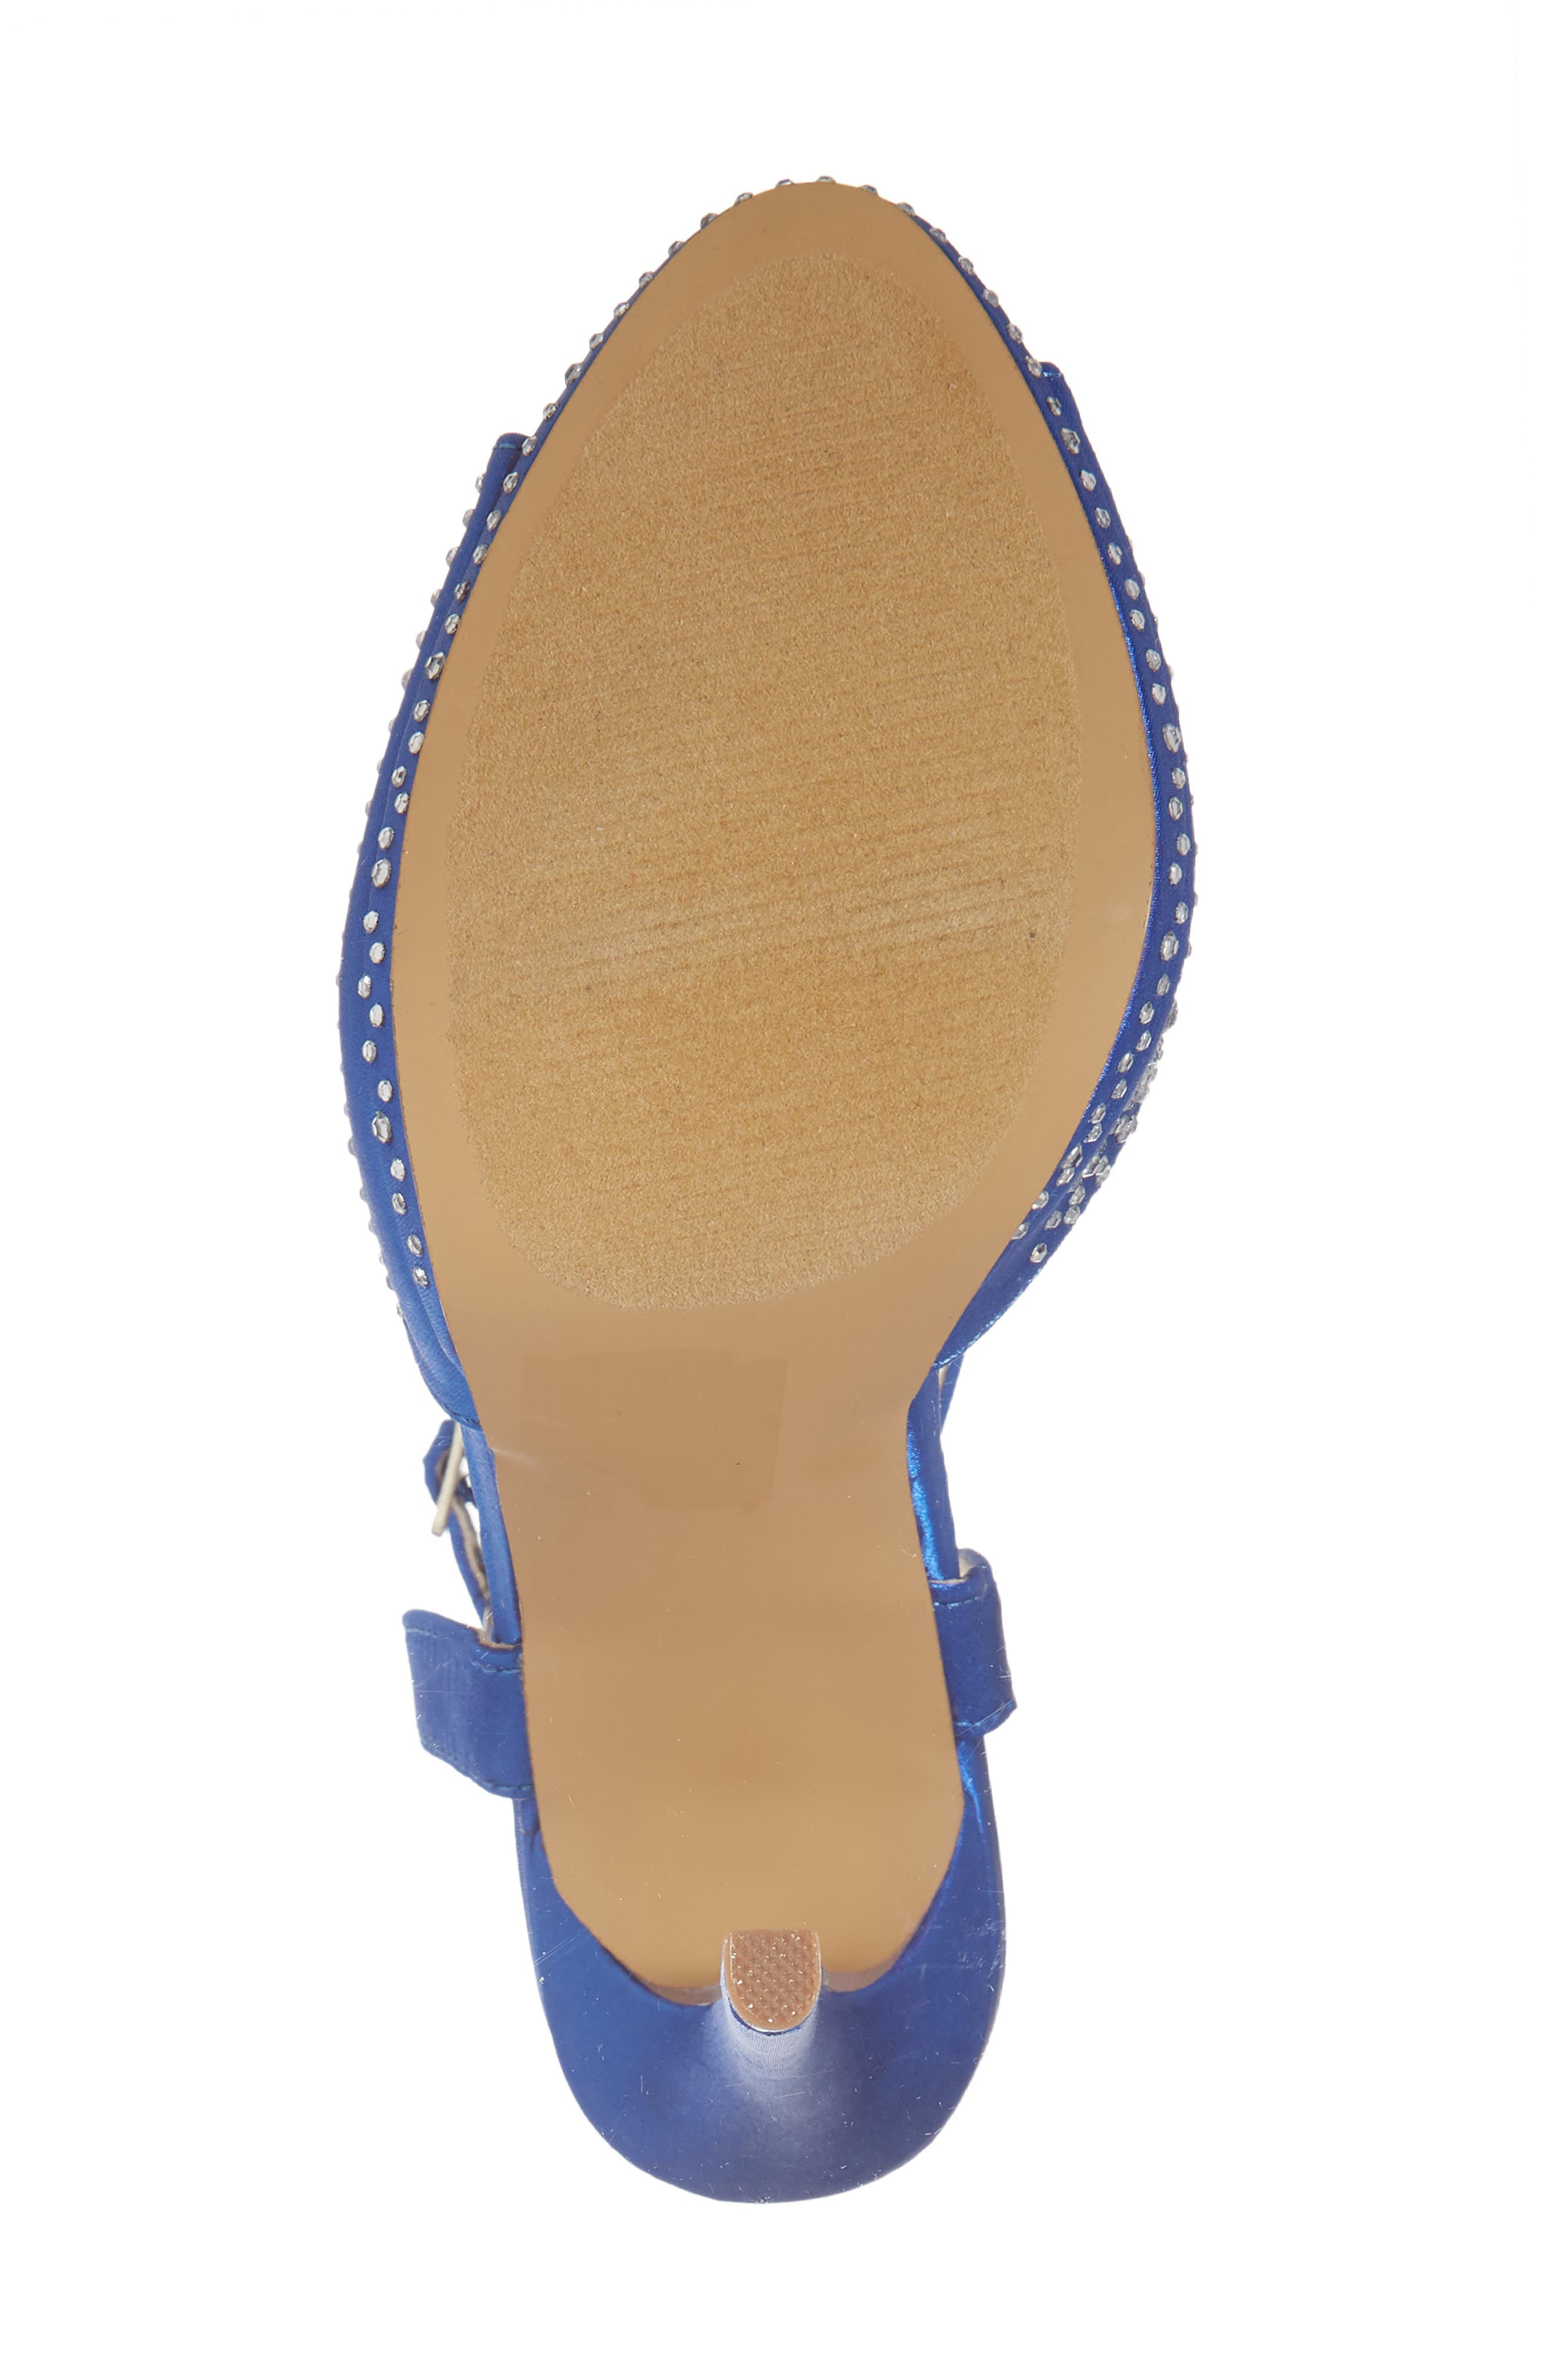 Tavi Sandal,                             Alternate thumbnail 6, color,                             Royal Blue Fabric